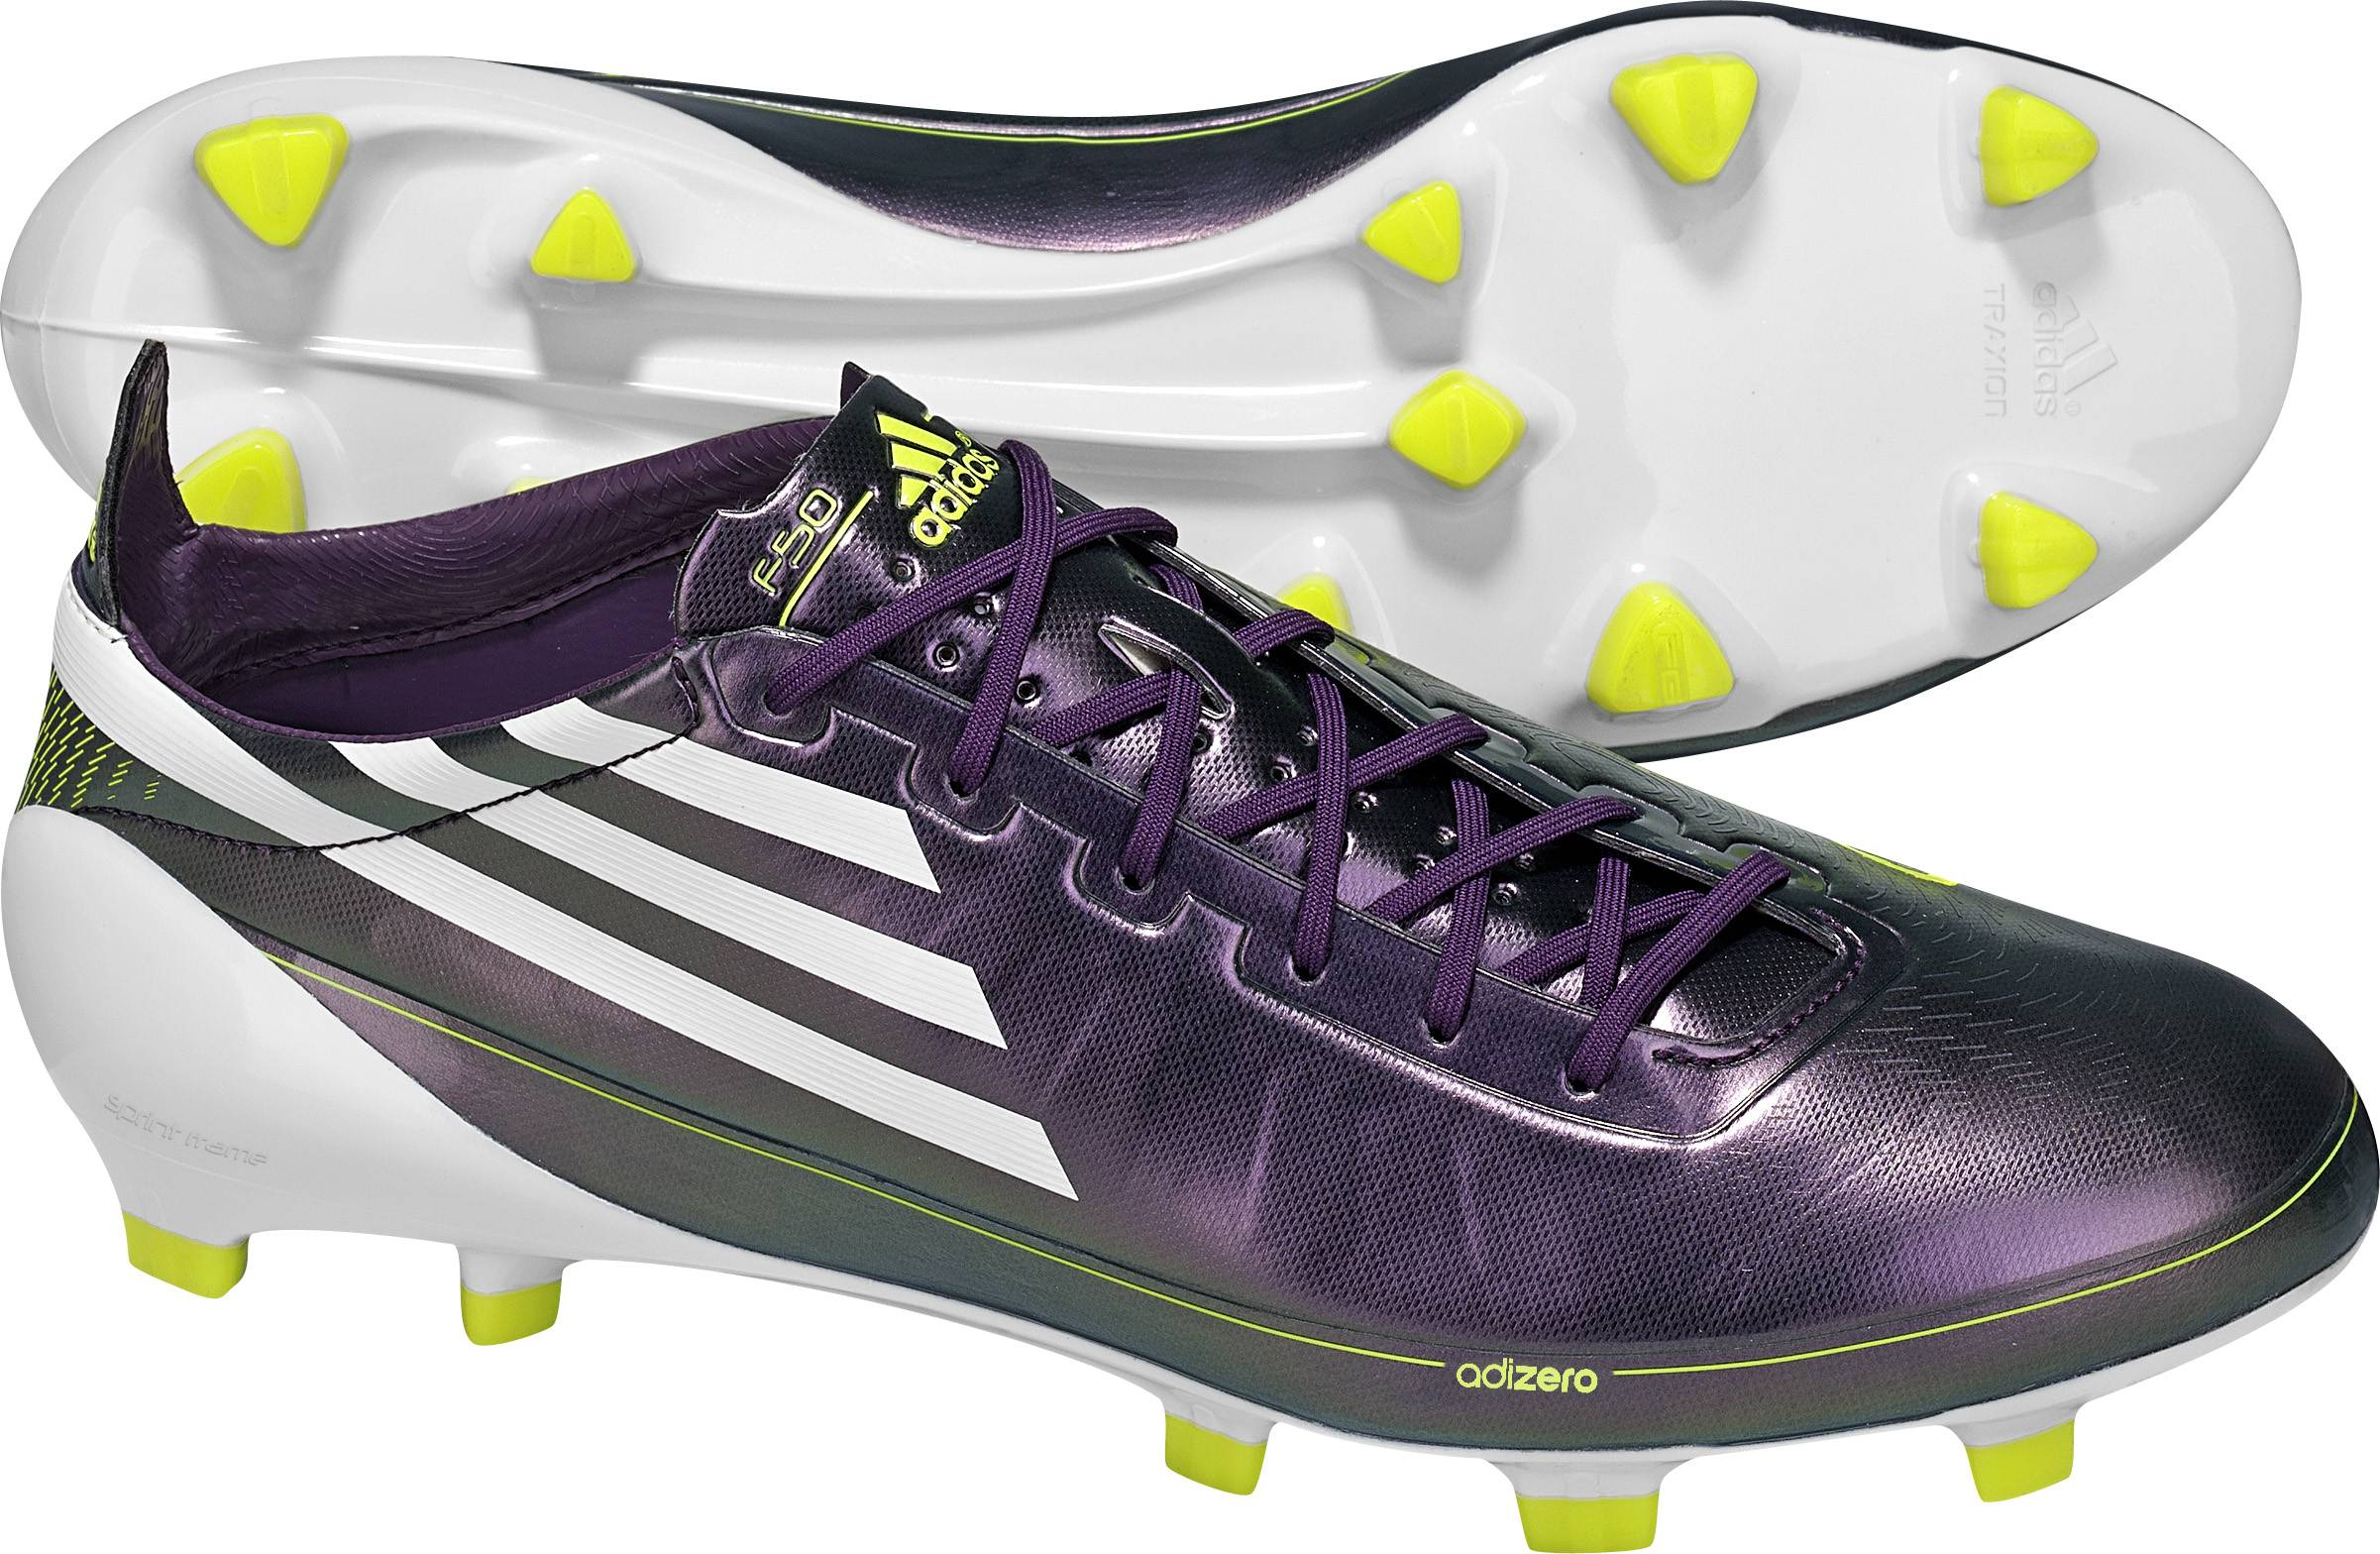 World Cup cleats